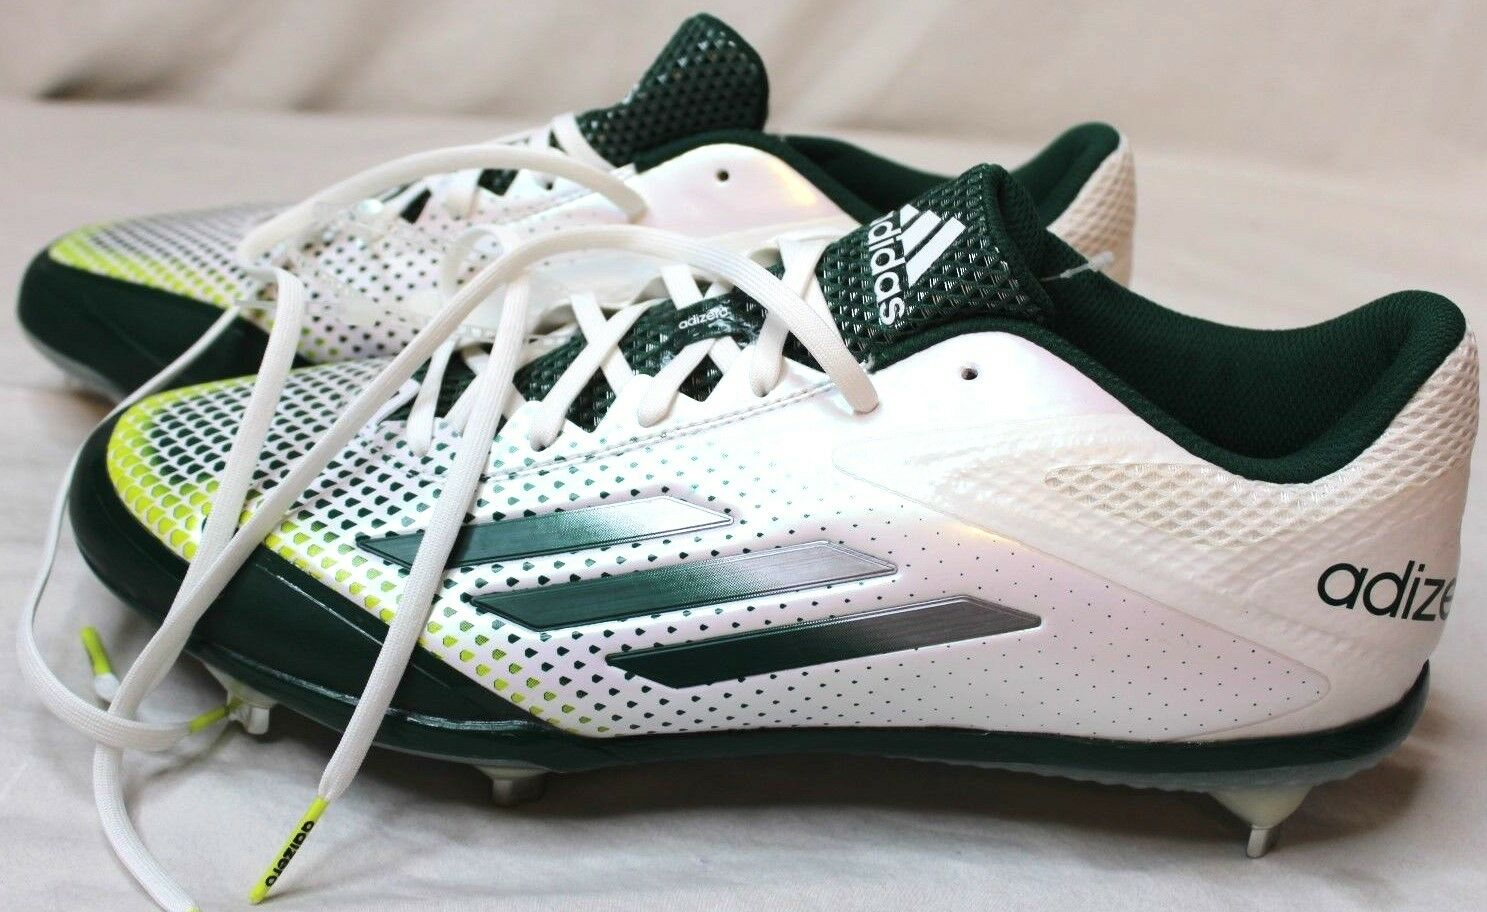 Adidas Adizero Afterburner 2.0 Low Metal Mens Baseball Cleats Green White S85709